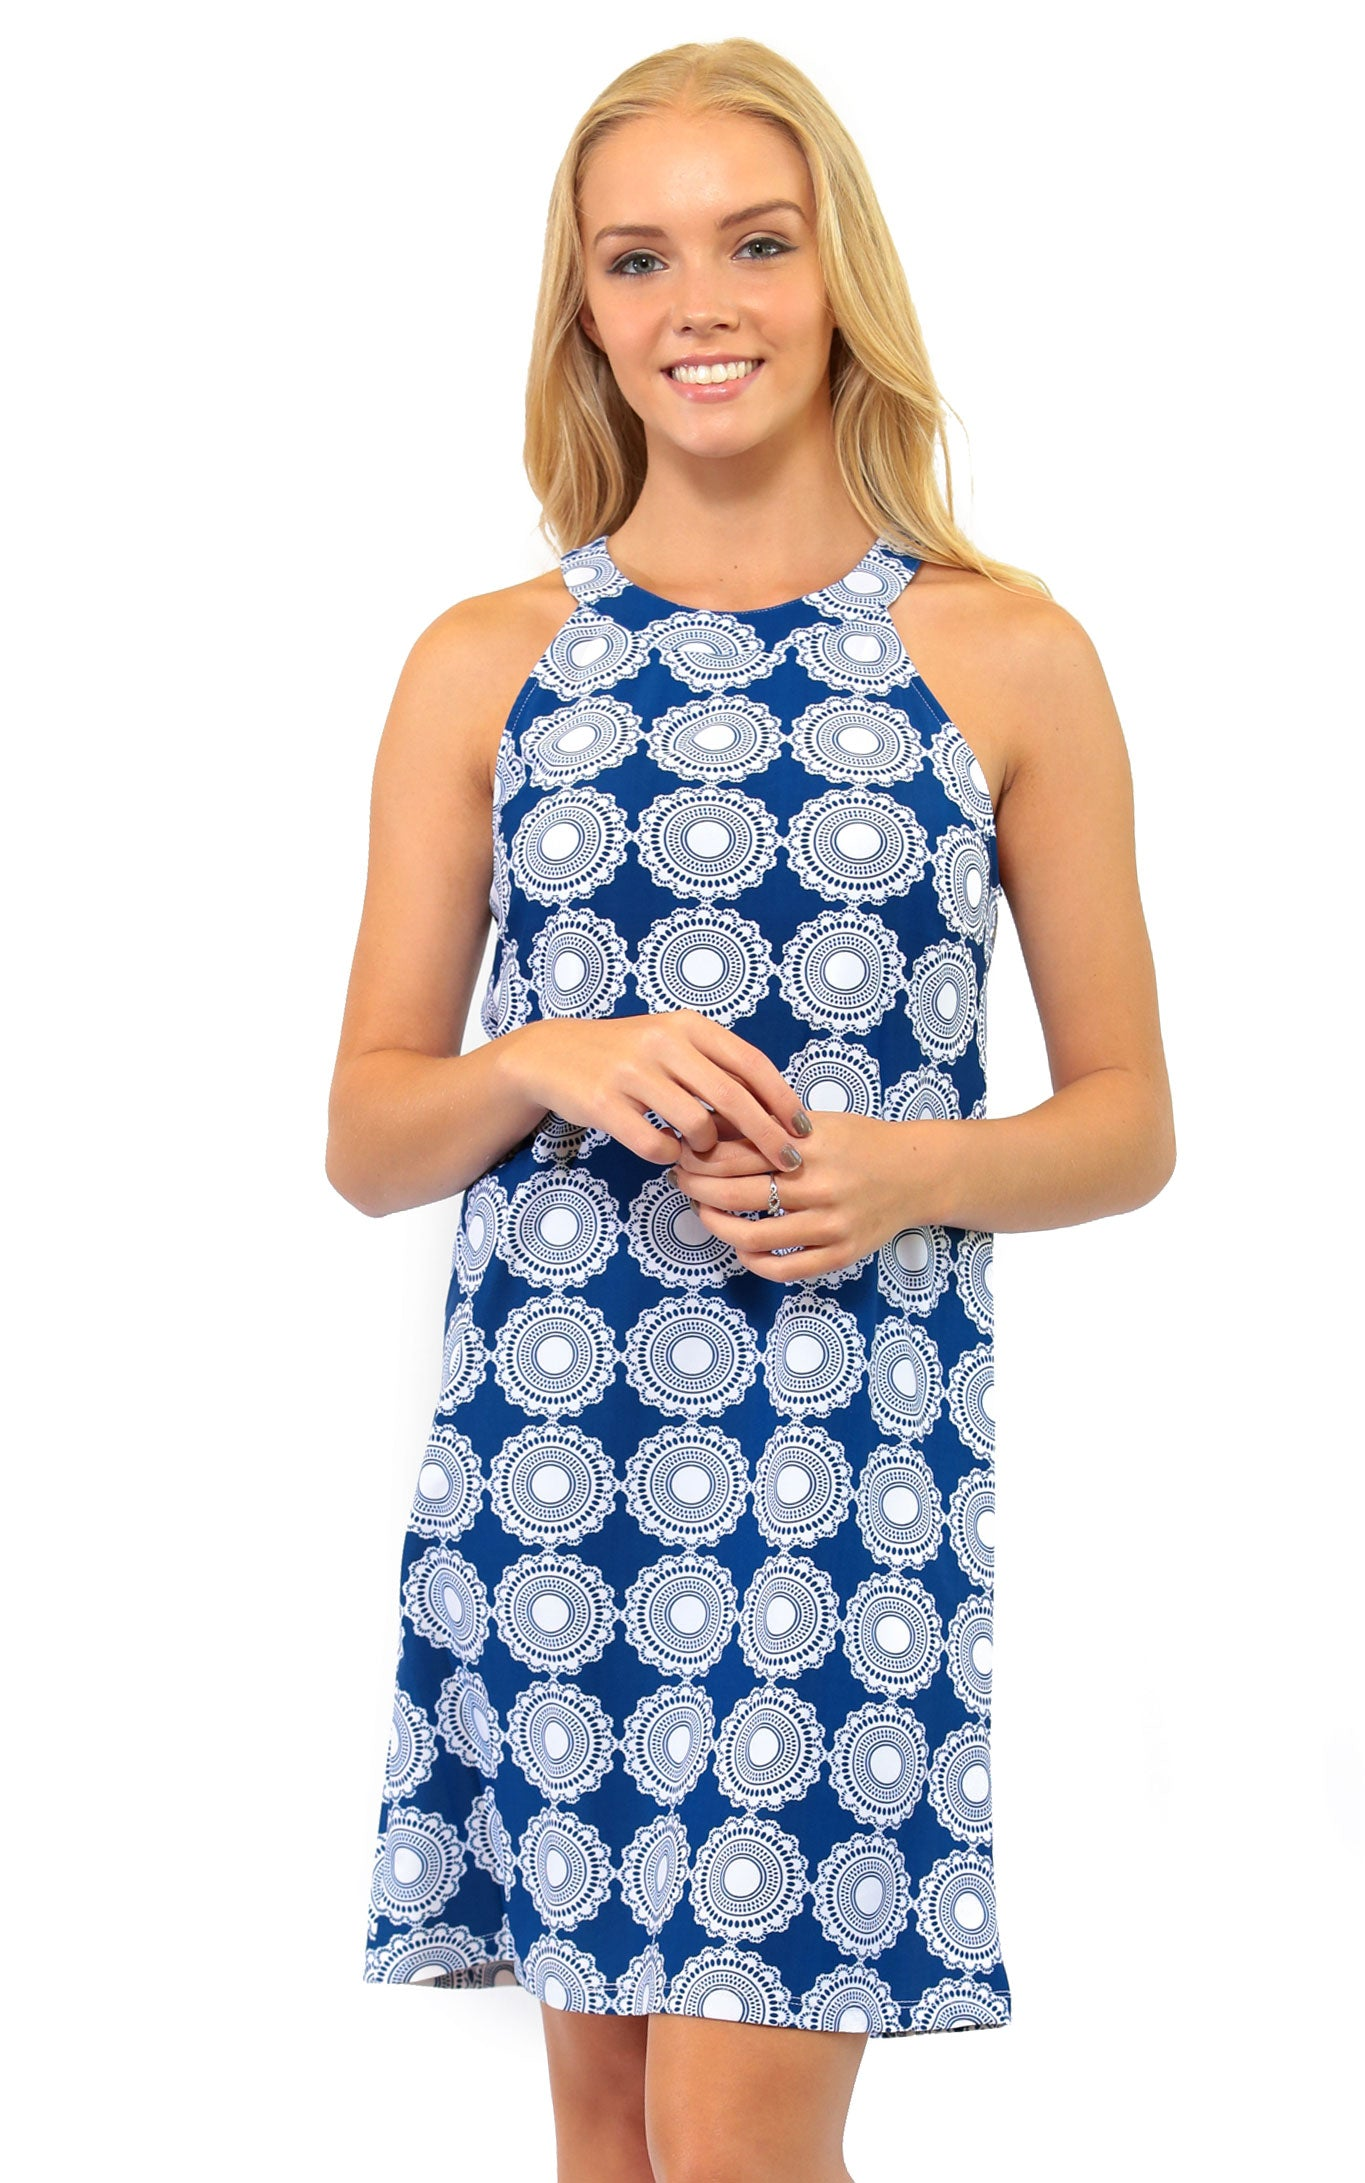 Sand Dollar Seaview Court High Neck Shift Dress